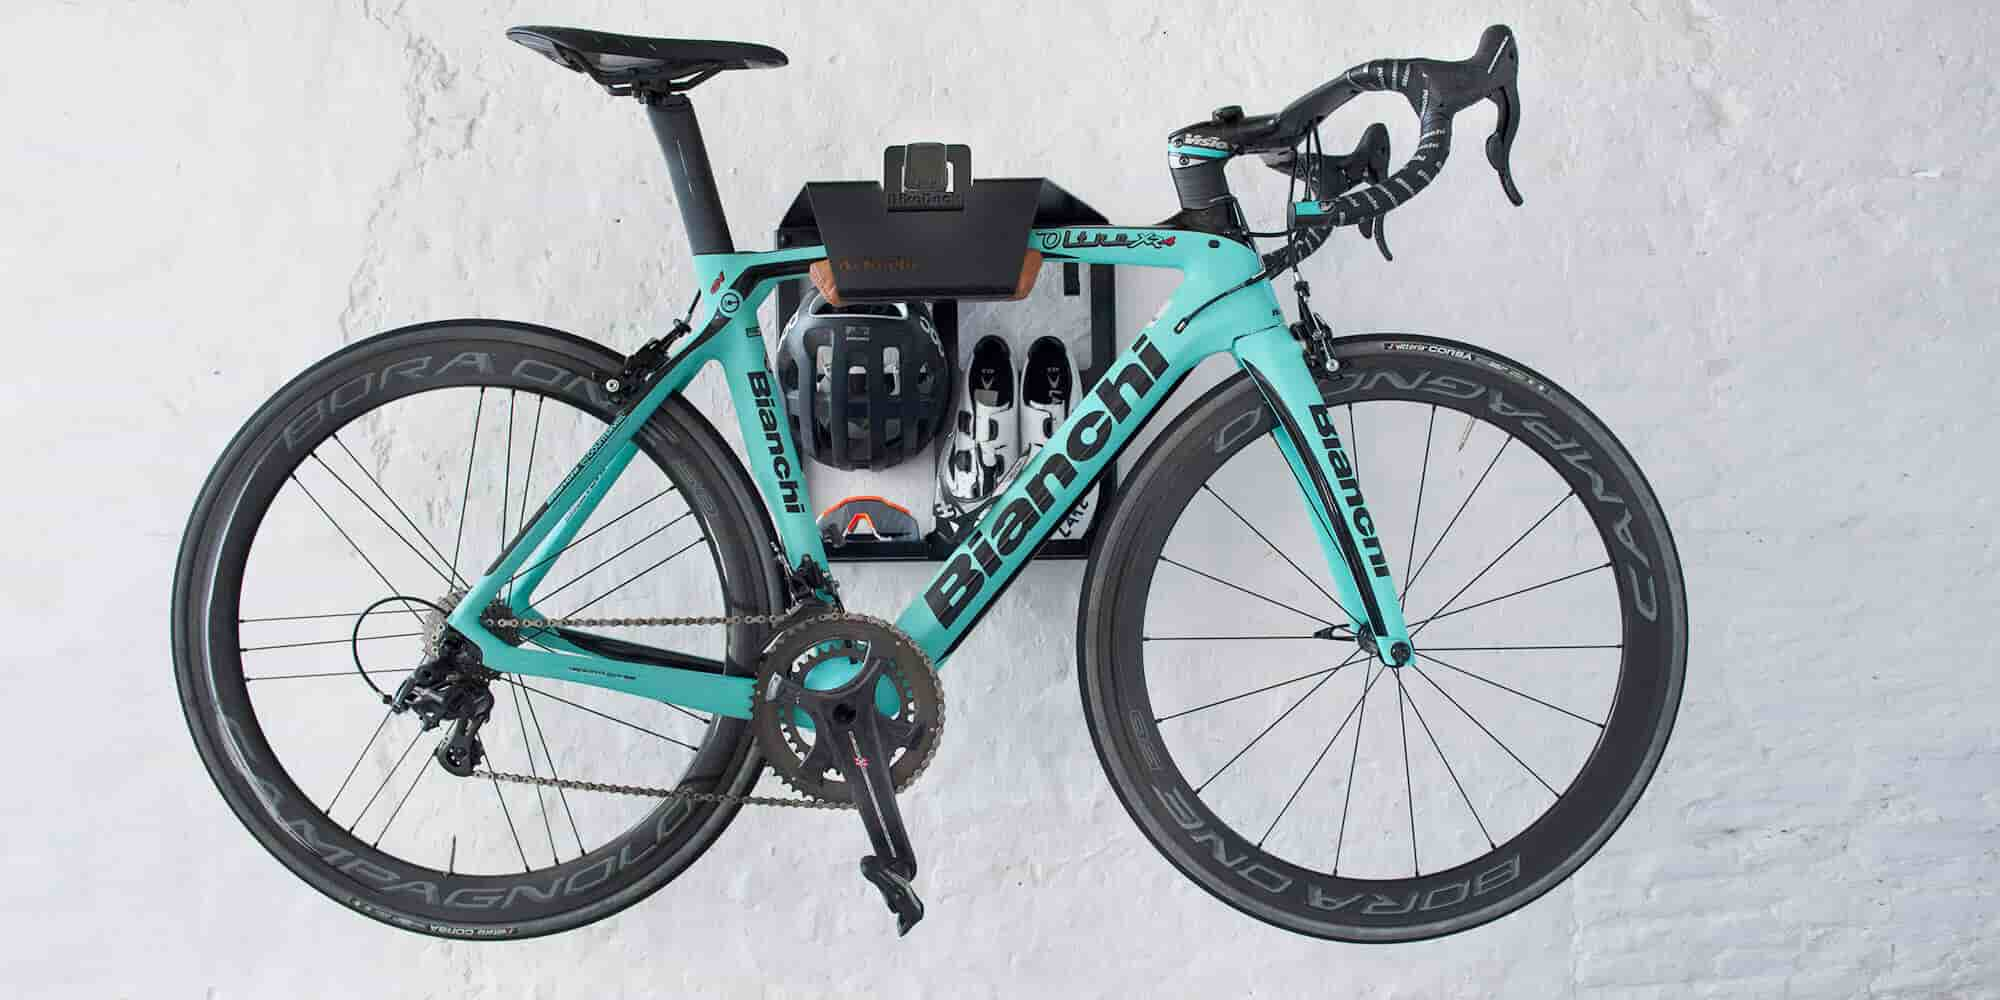 bianchi road bike mounted on the wall